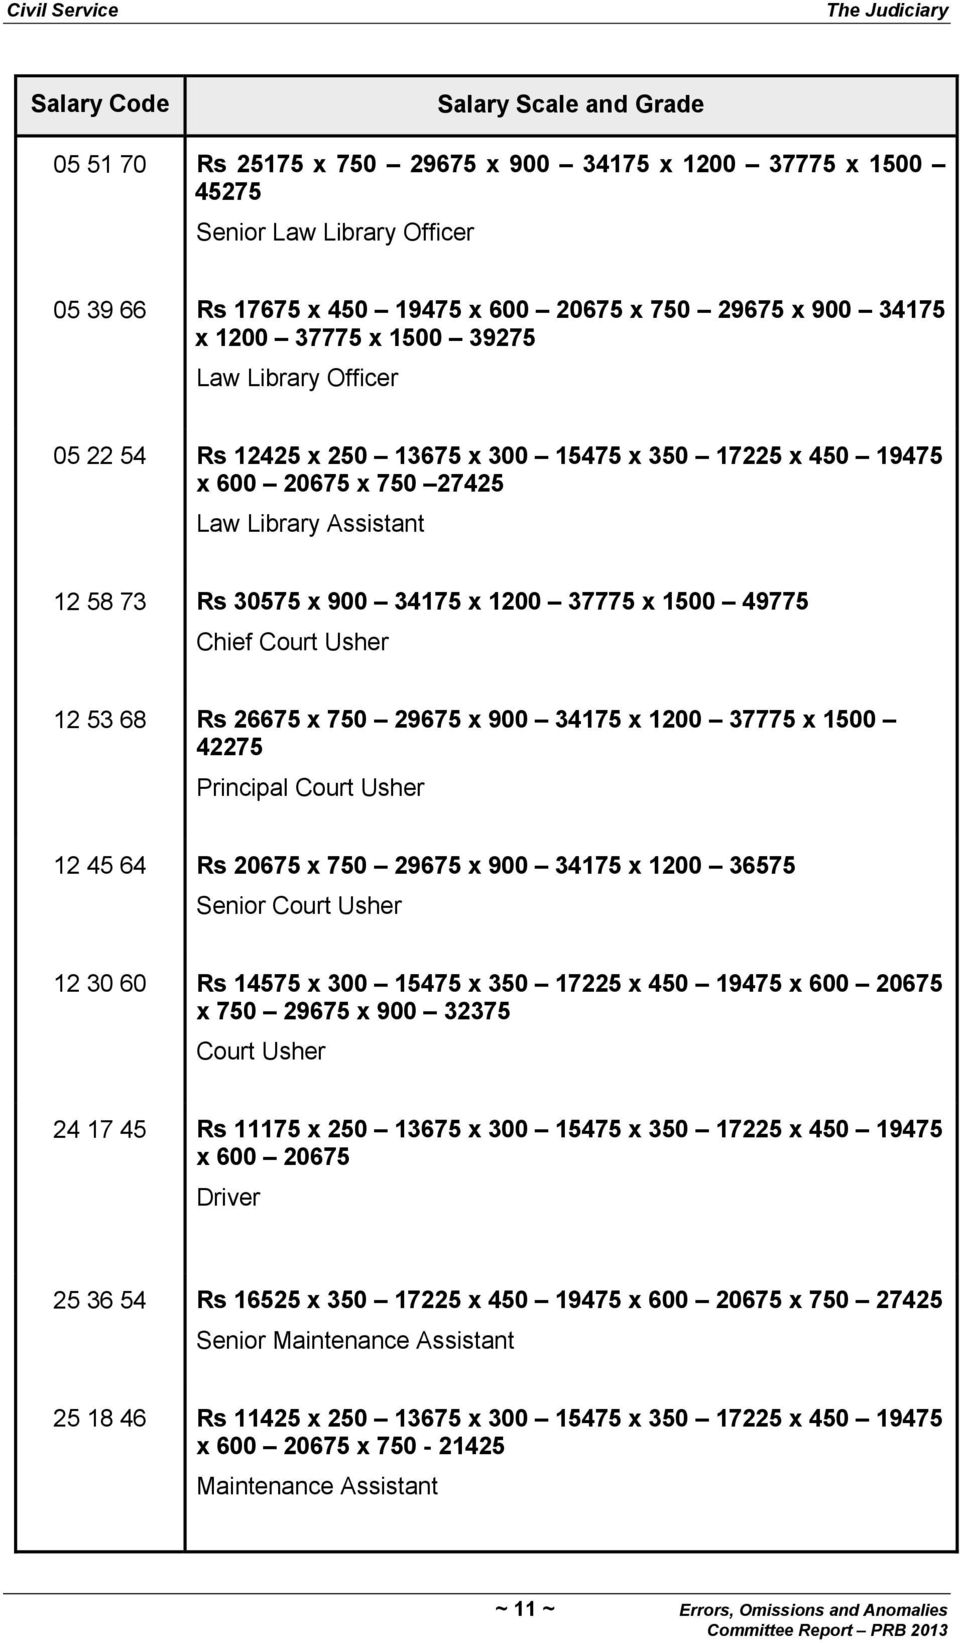 Court Usher 12 53 68 Rs 26675 x 750 29675 x 900 34175 x 1200 37775 x 1500 42275 Principal Court Usher 12 45 64 Rs 20675 x 750 29675 x 900 34175 x 1200 36575 Senior Court Usher 12 30 60 Rs 14575 x 300